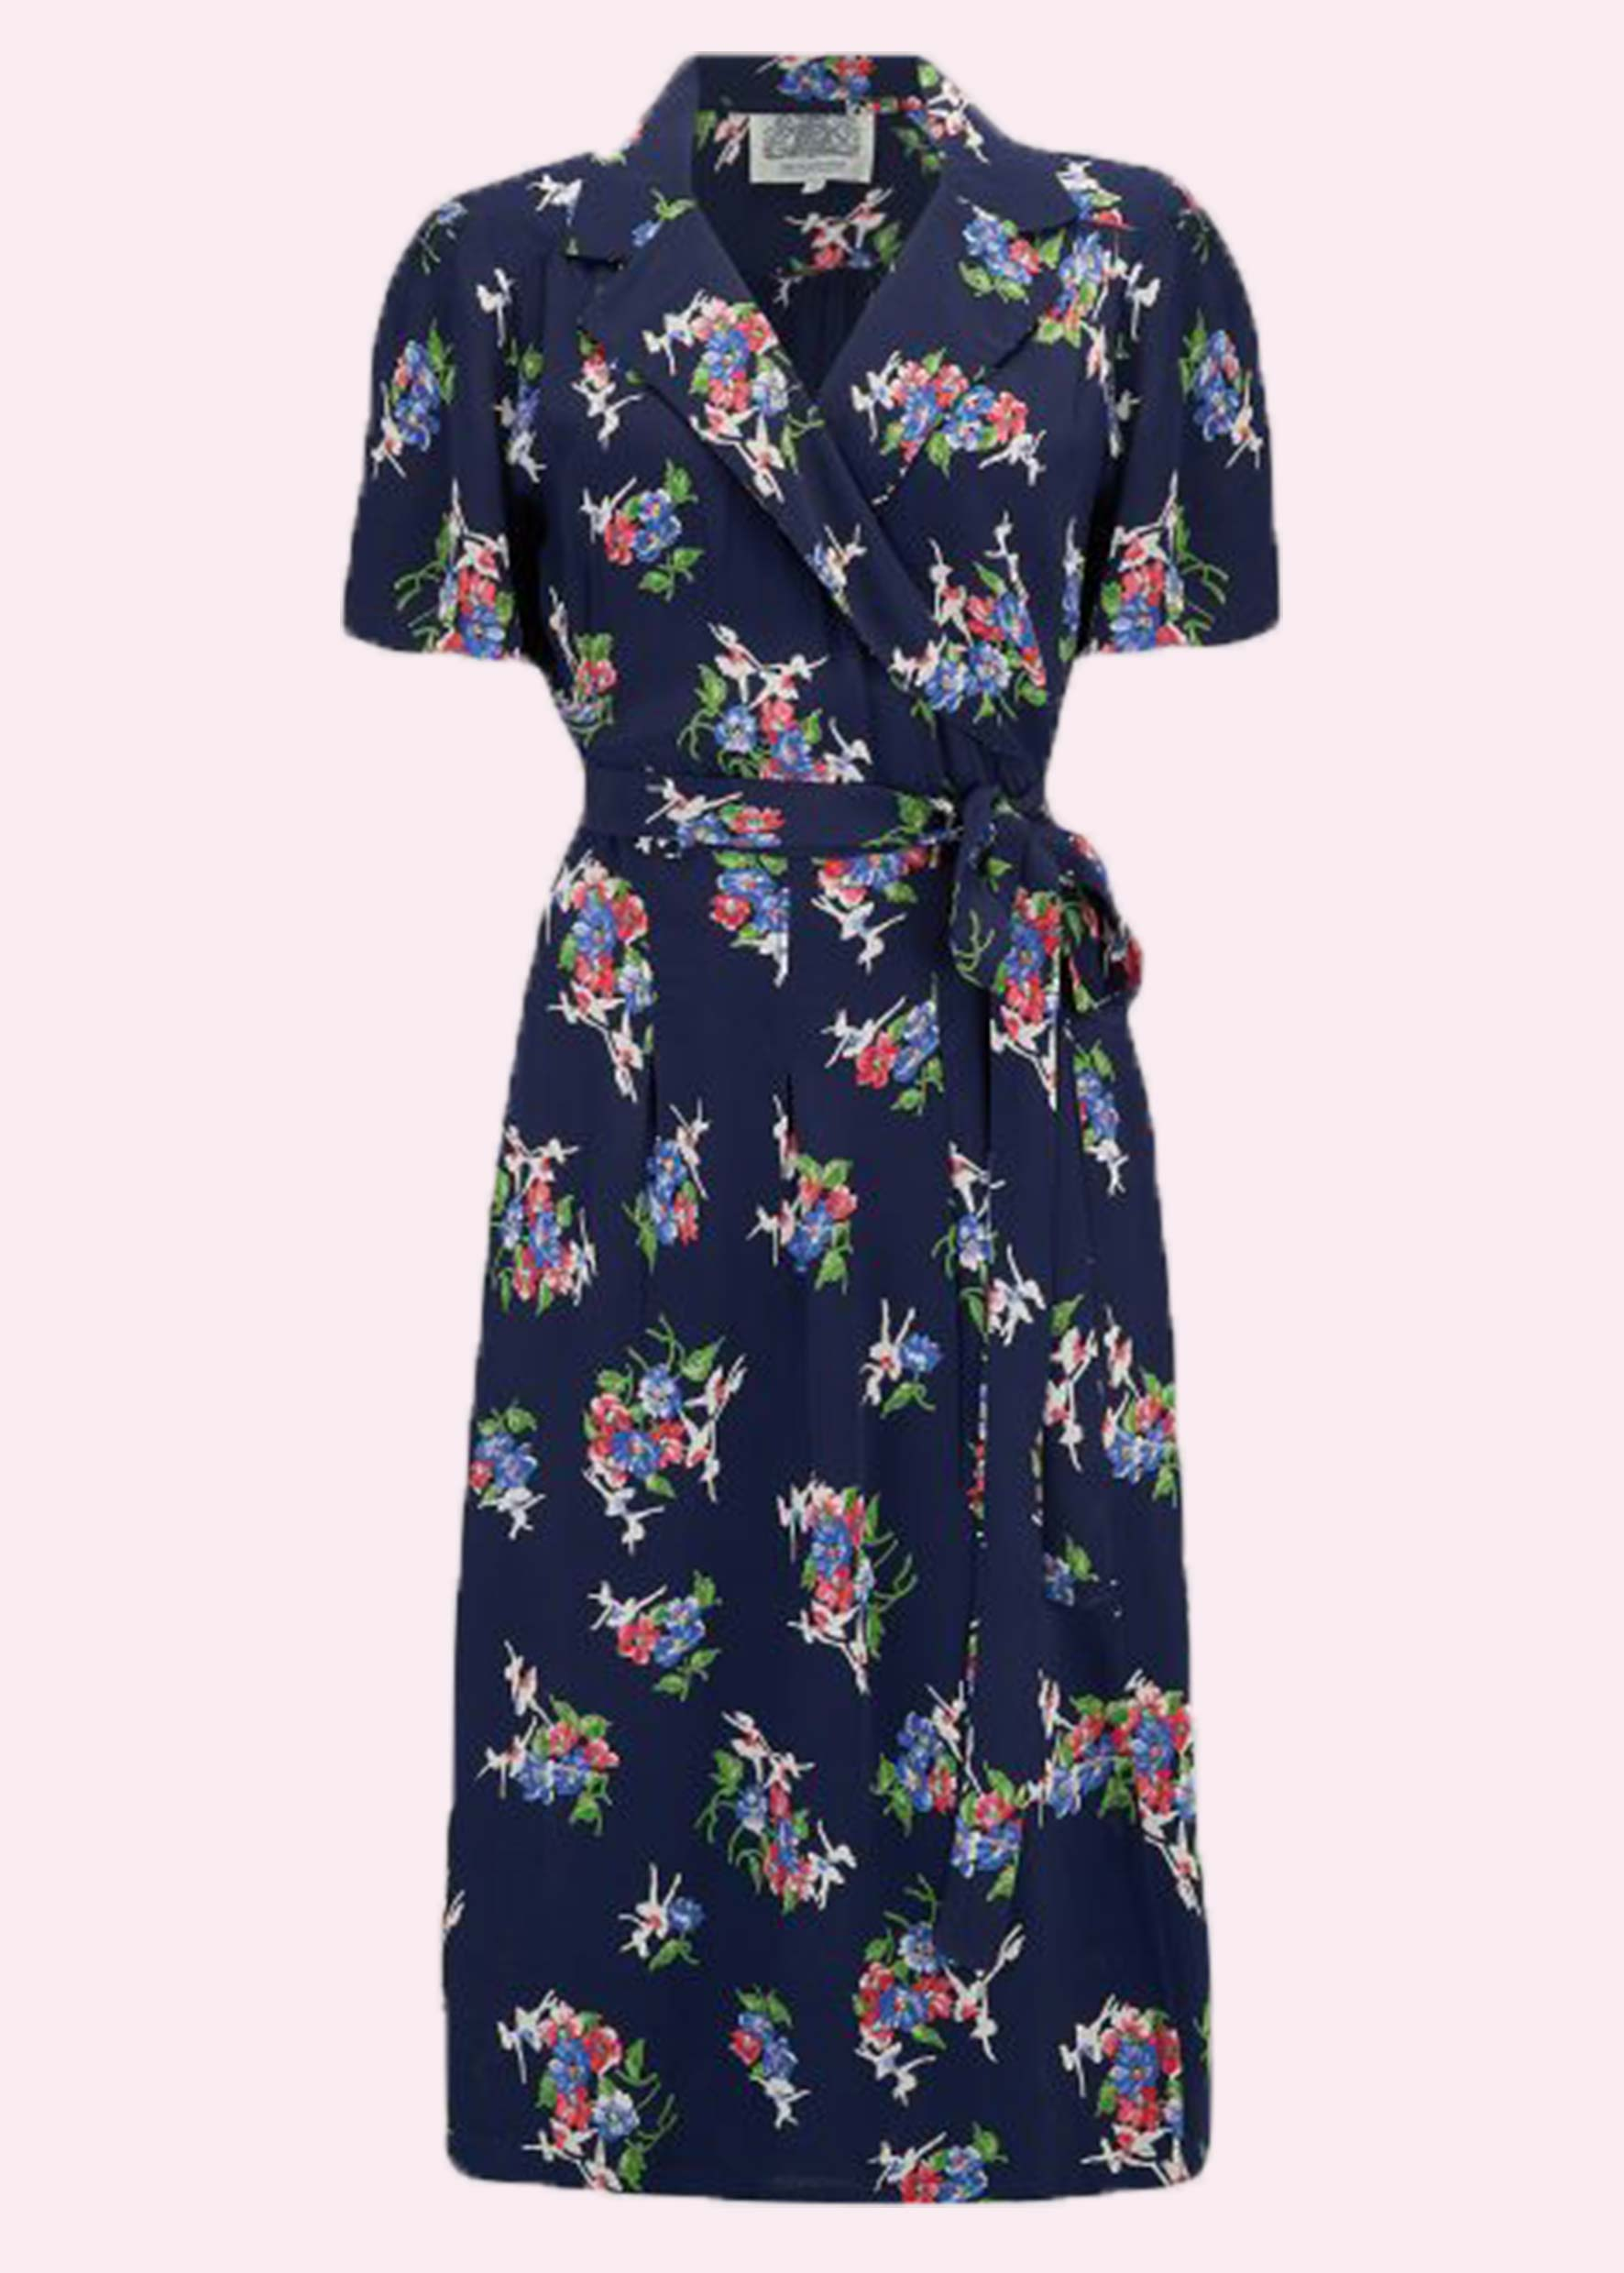 Navy blue sloom dress with floral print from The Seamstress Of Bloomsbury